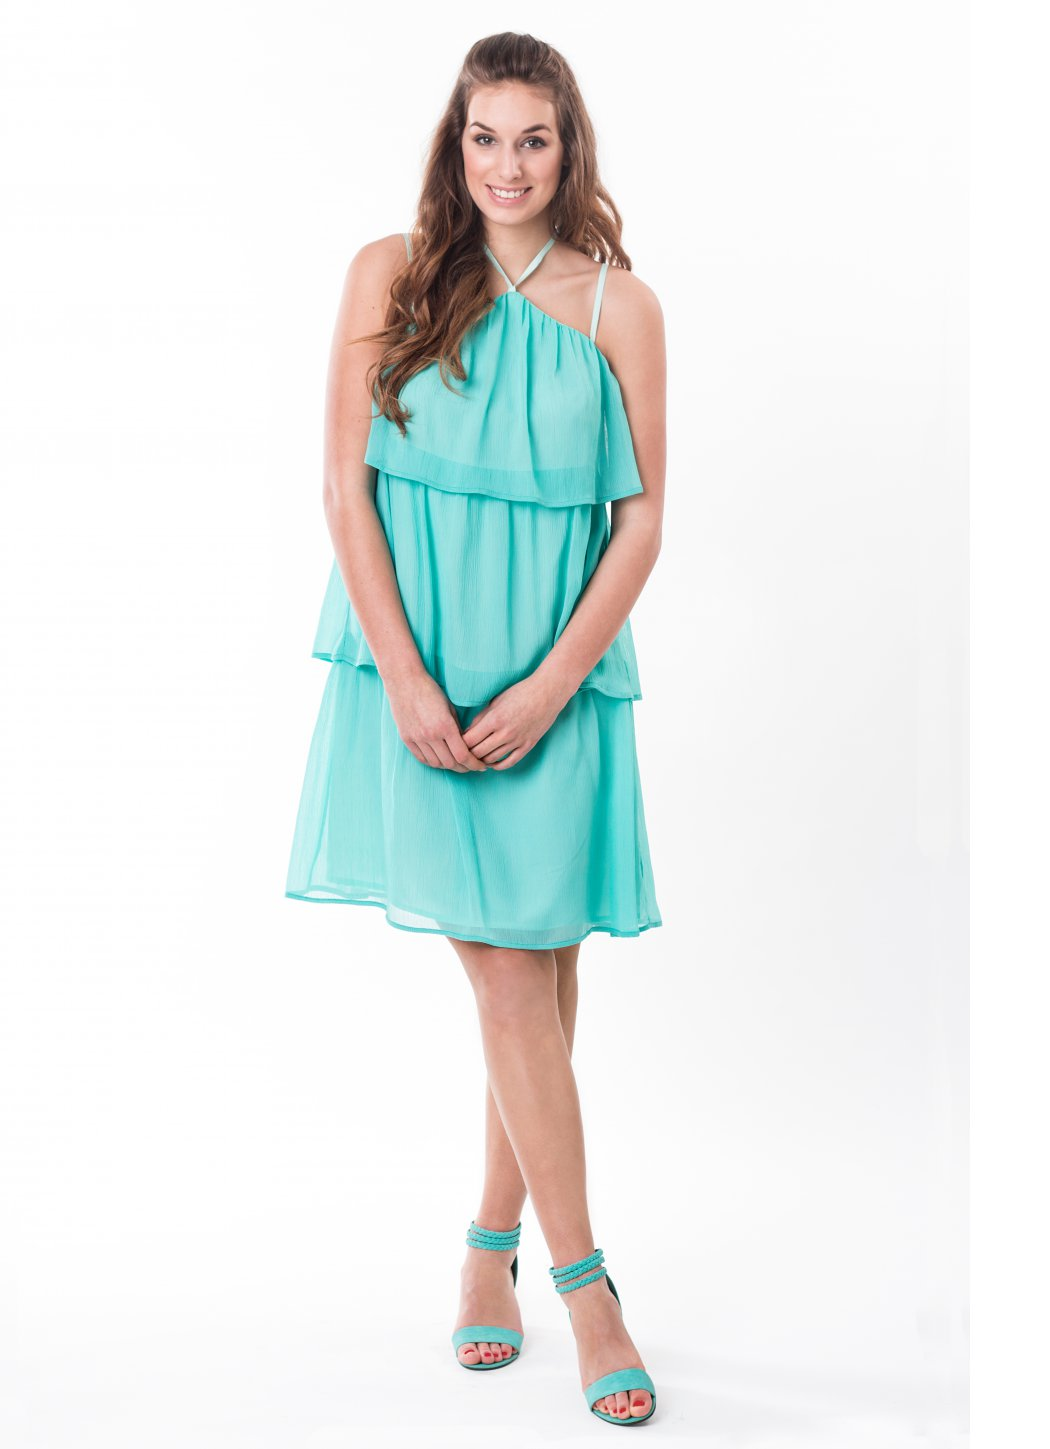 Dress with ruffles Aqua Female dress